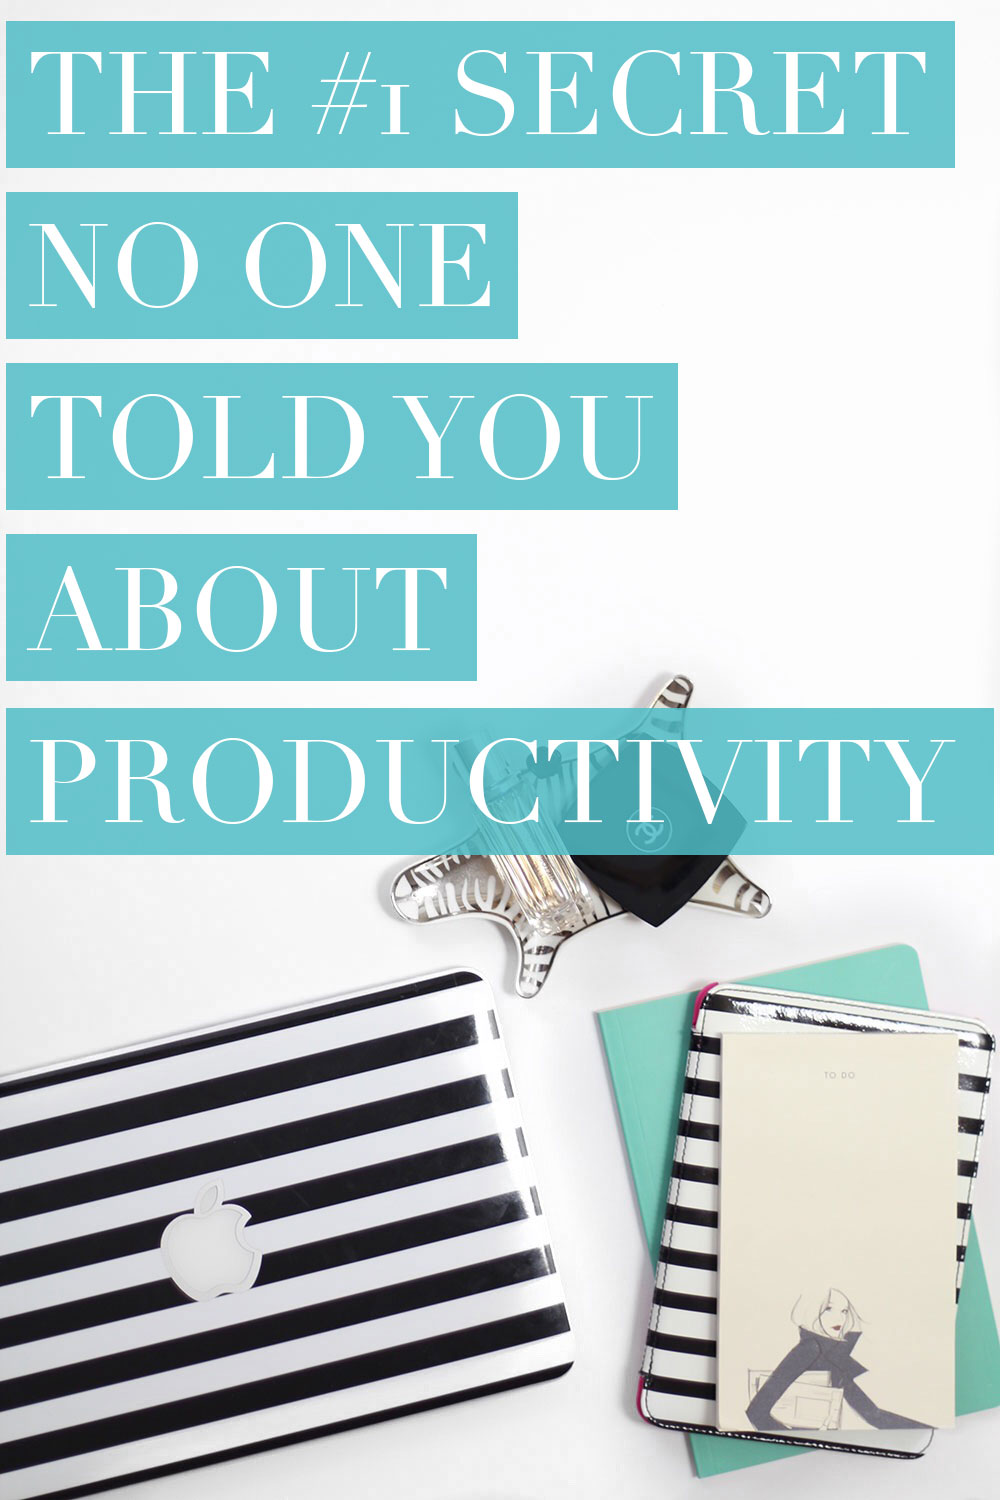 About Productivity the #1 secret no one told you about productivity! - strange